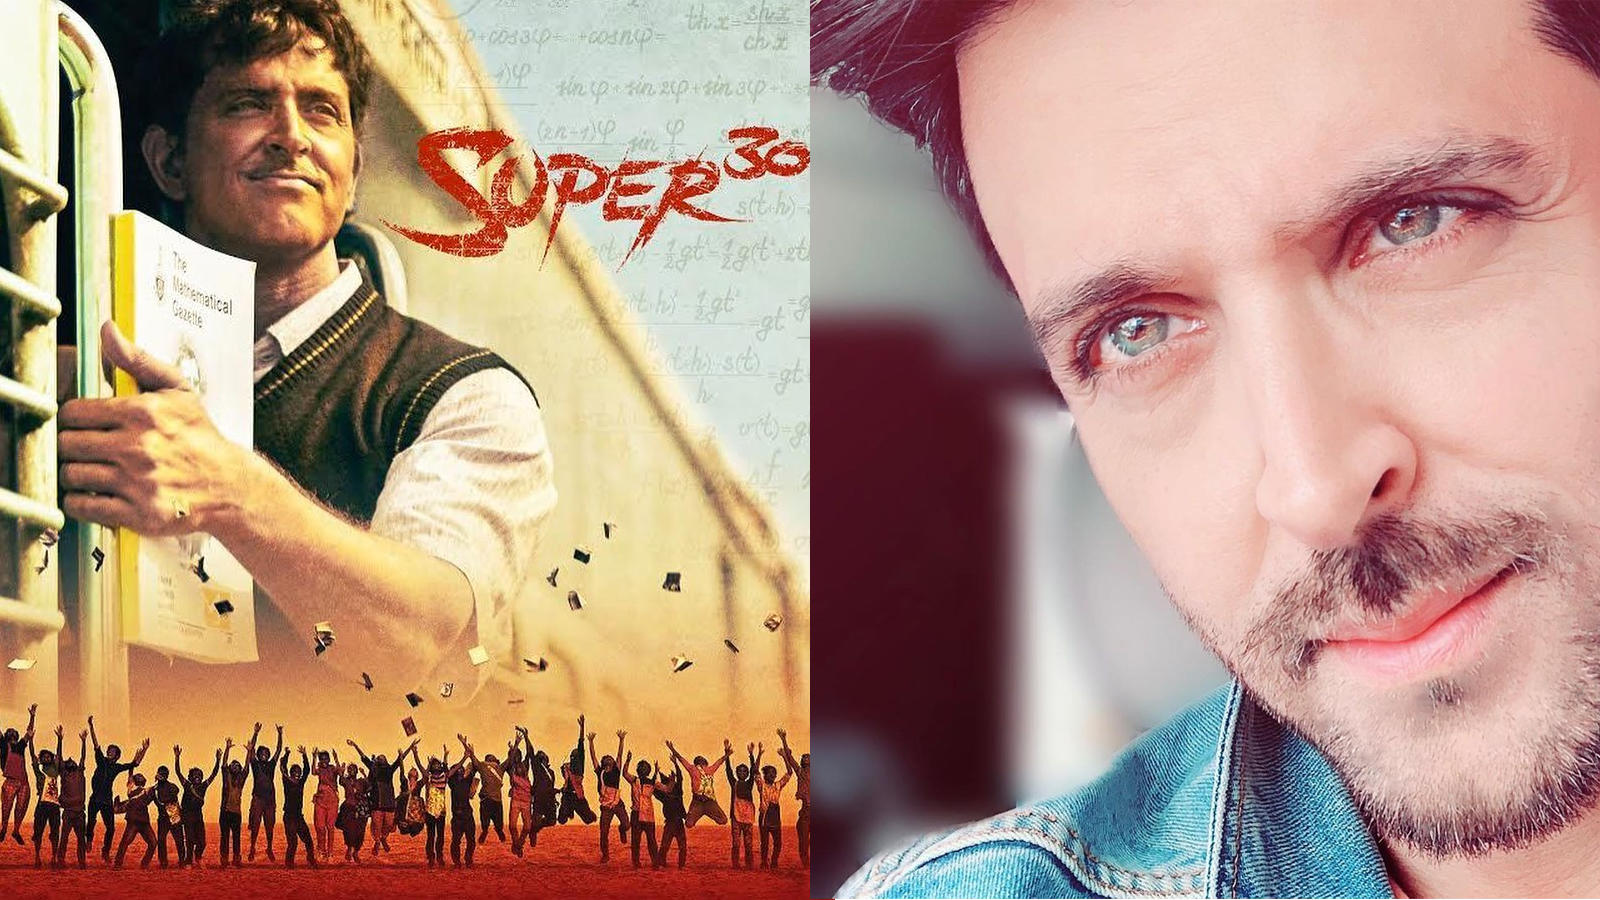 Good news for Hrithik Roshan's fans in Bihar as state government declares 'Super 30' tax-free